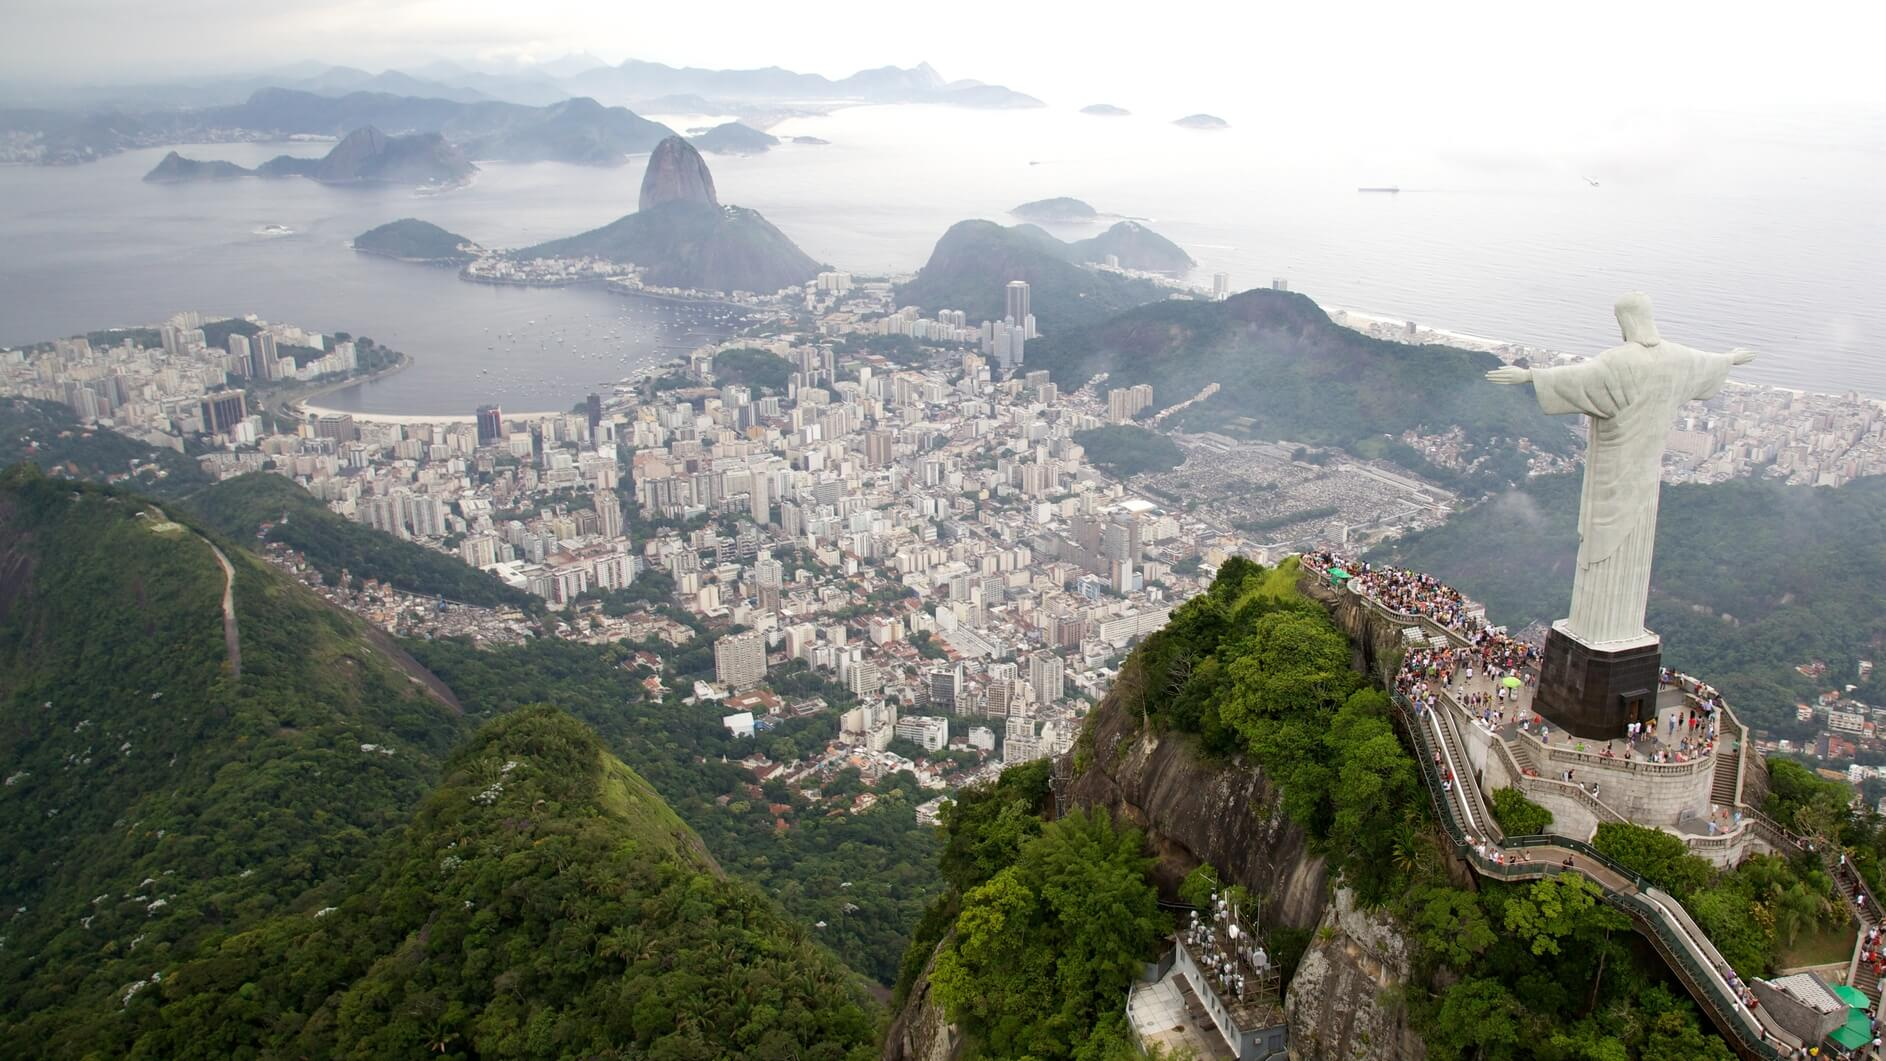 New York to Rio De Janeiro, Brazil for only $445 roundtrip (Sep-Dec dates)